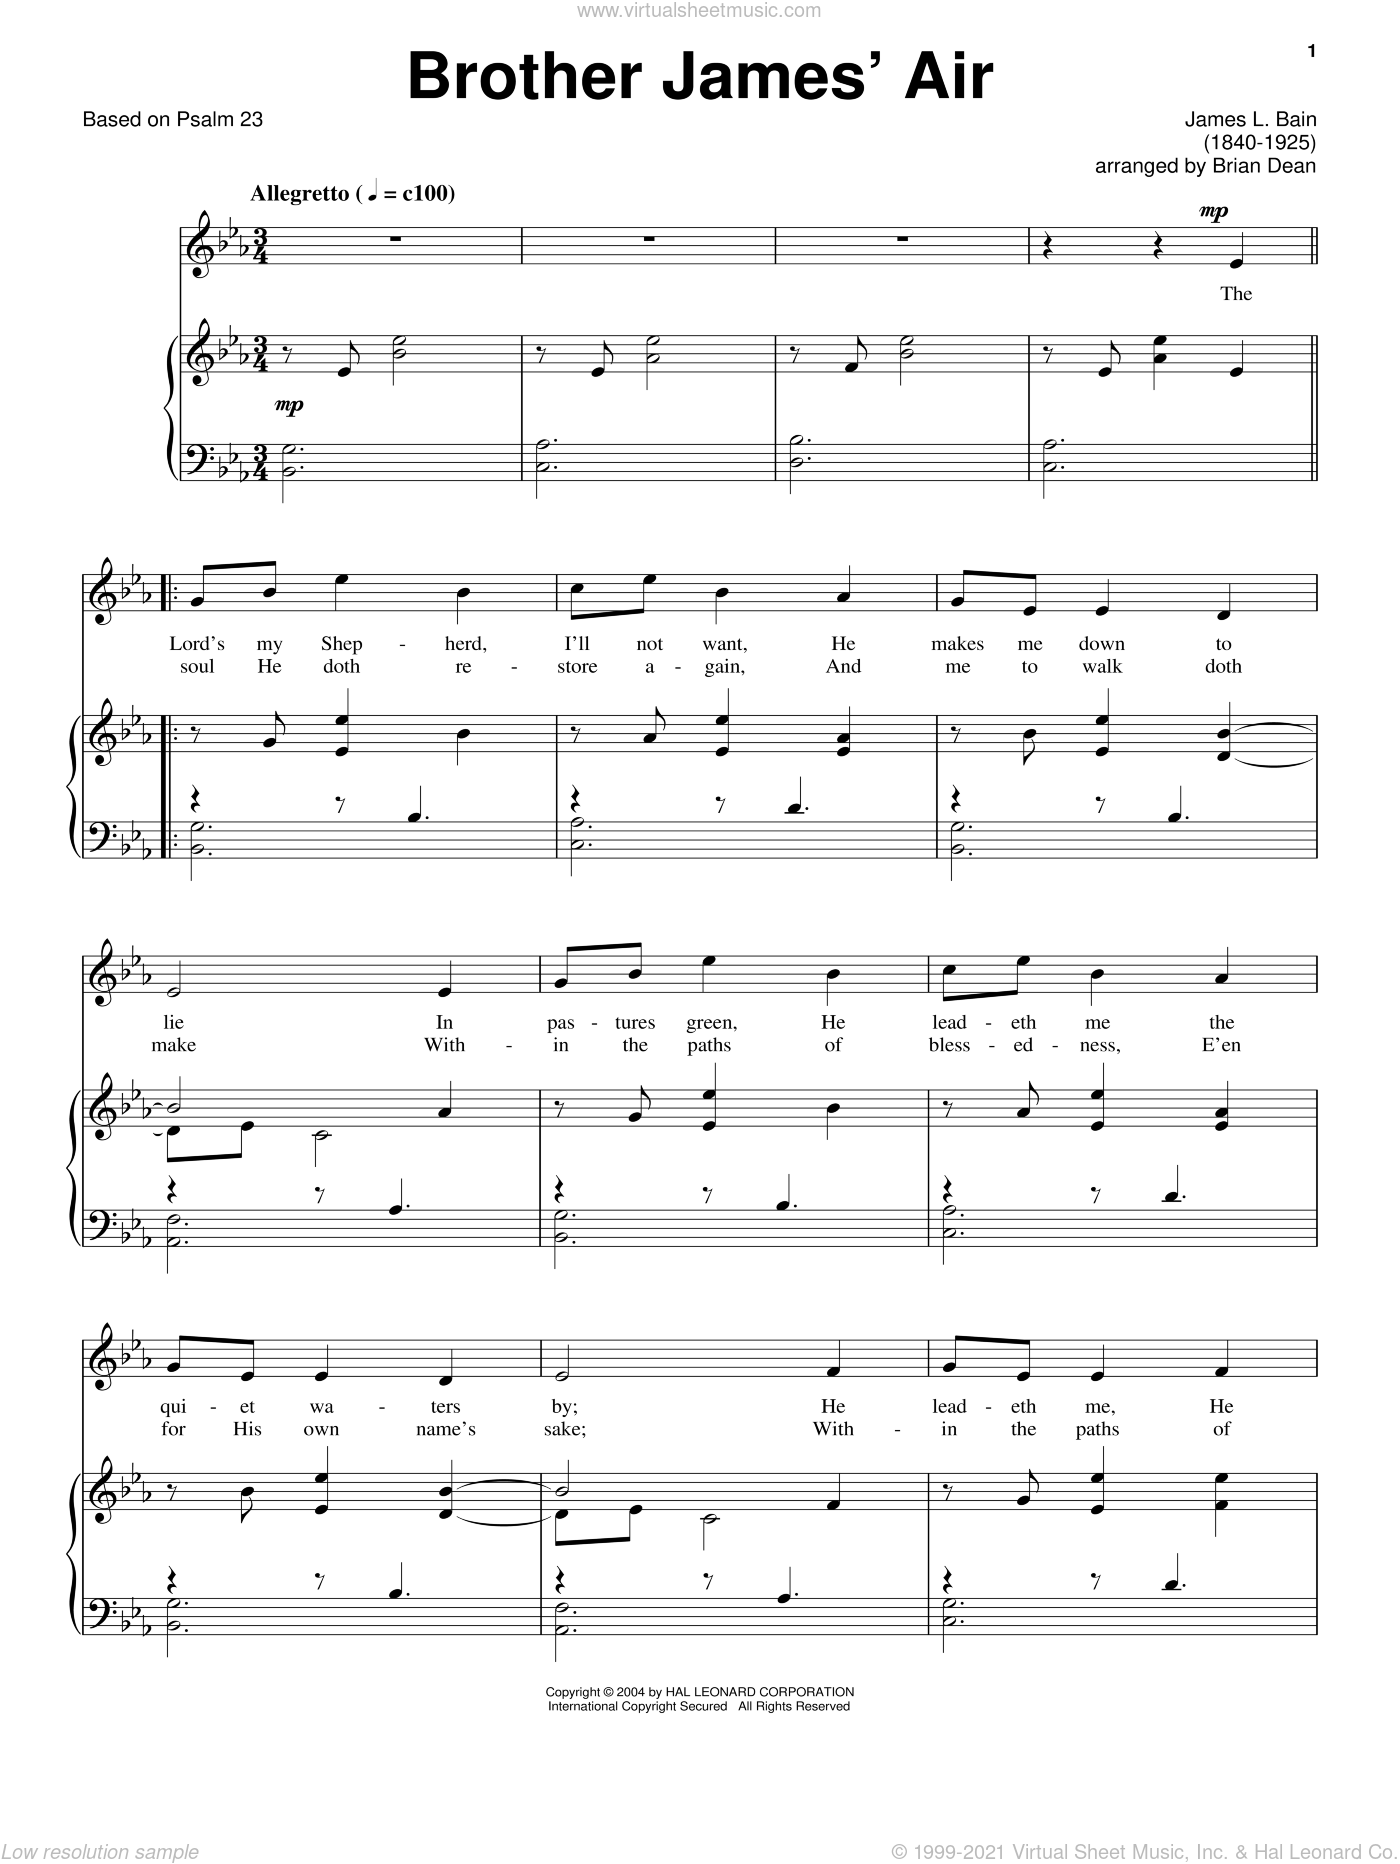 Brother James' Air sheet music for voice and piano by Based on Psalm 23 and Miscellaneous, intermediate skill level